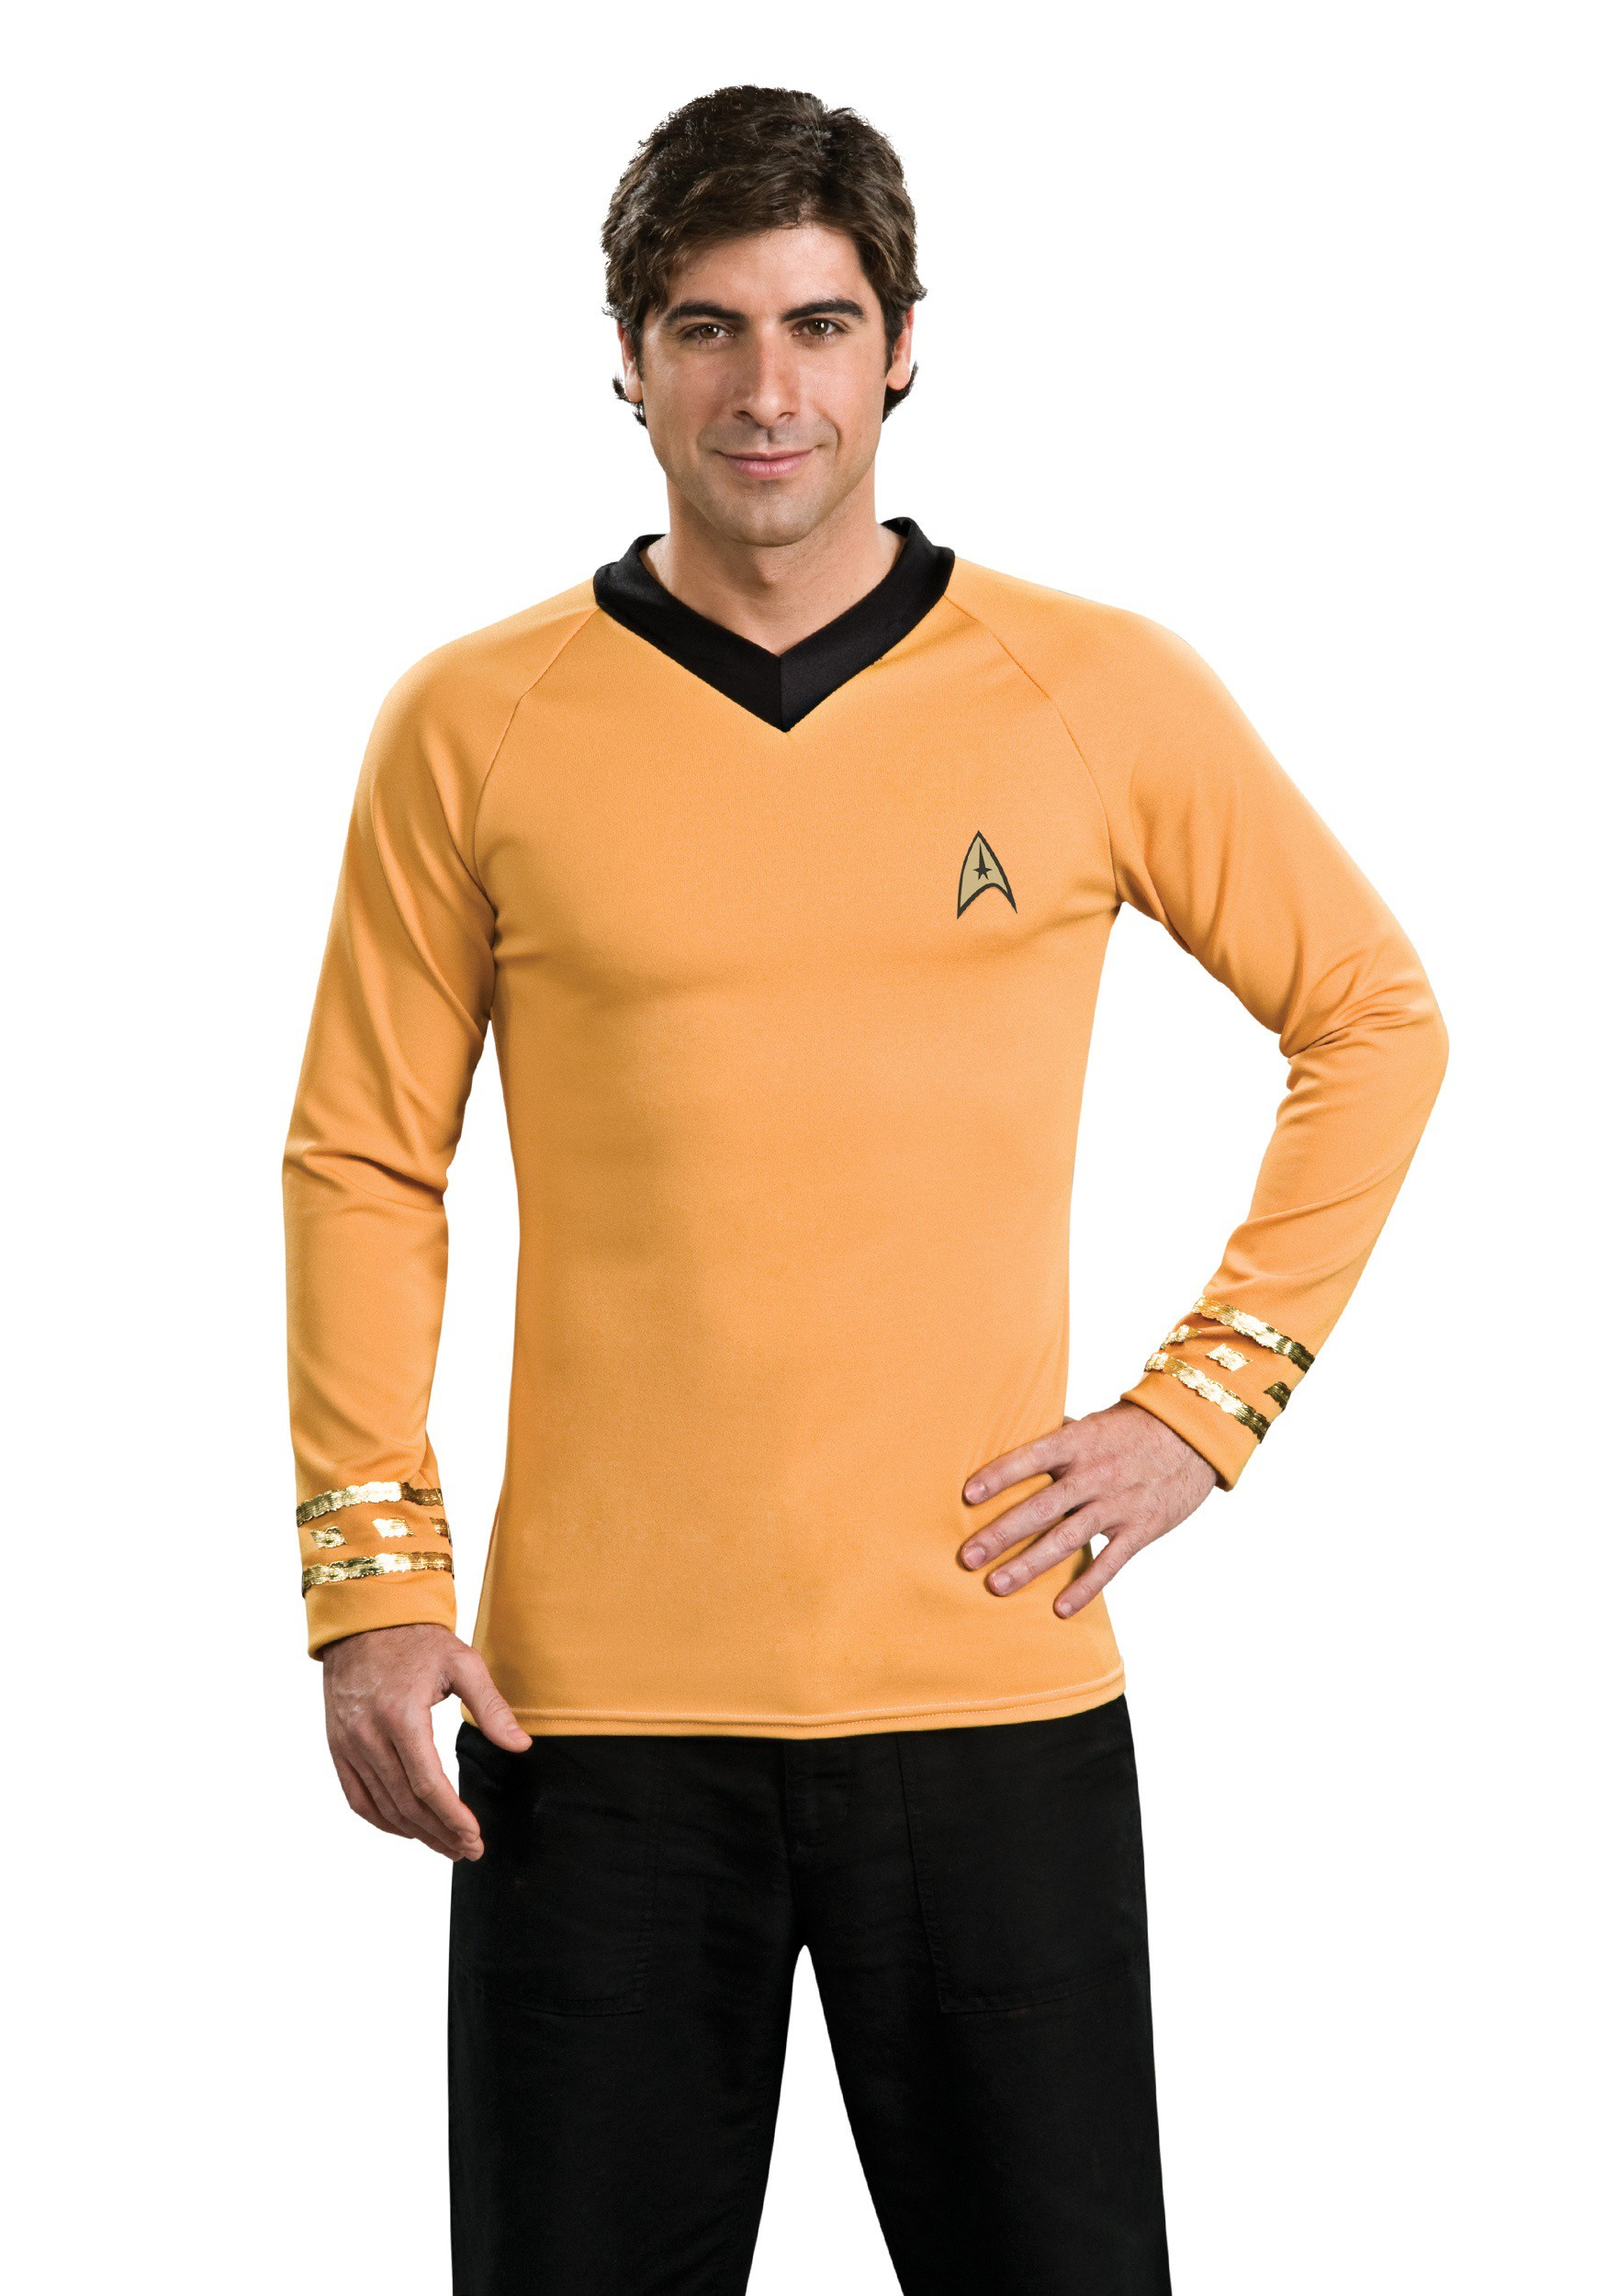 35349d0332 Star Trek Costumes   Uniforms - HalloweenCostumes.com - Halloween ...